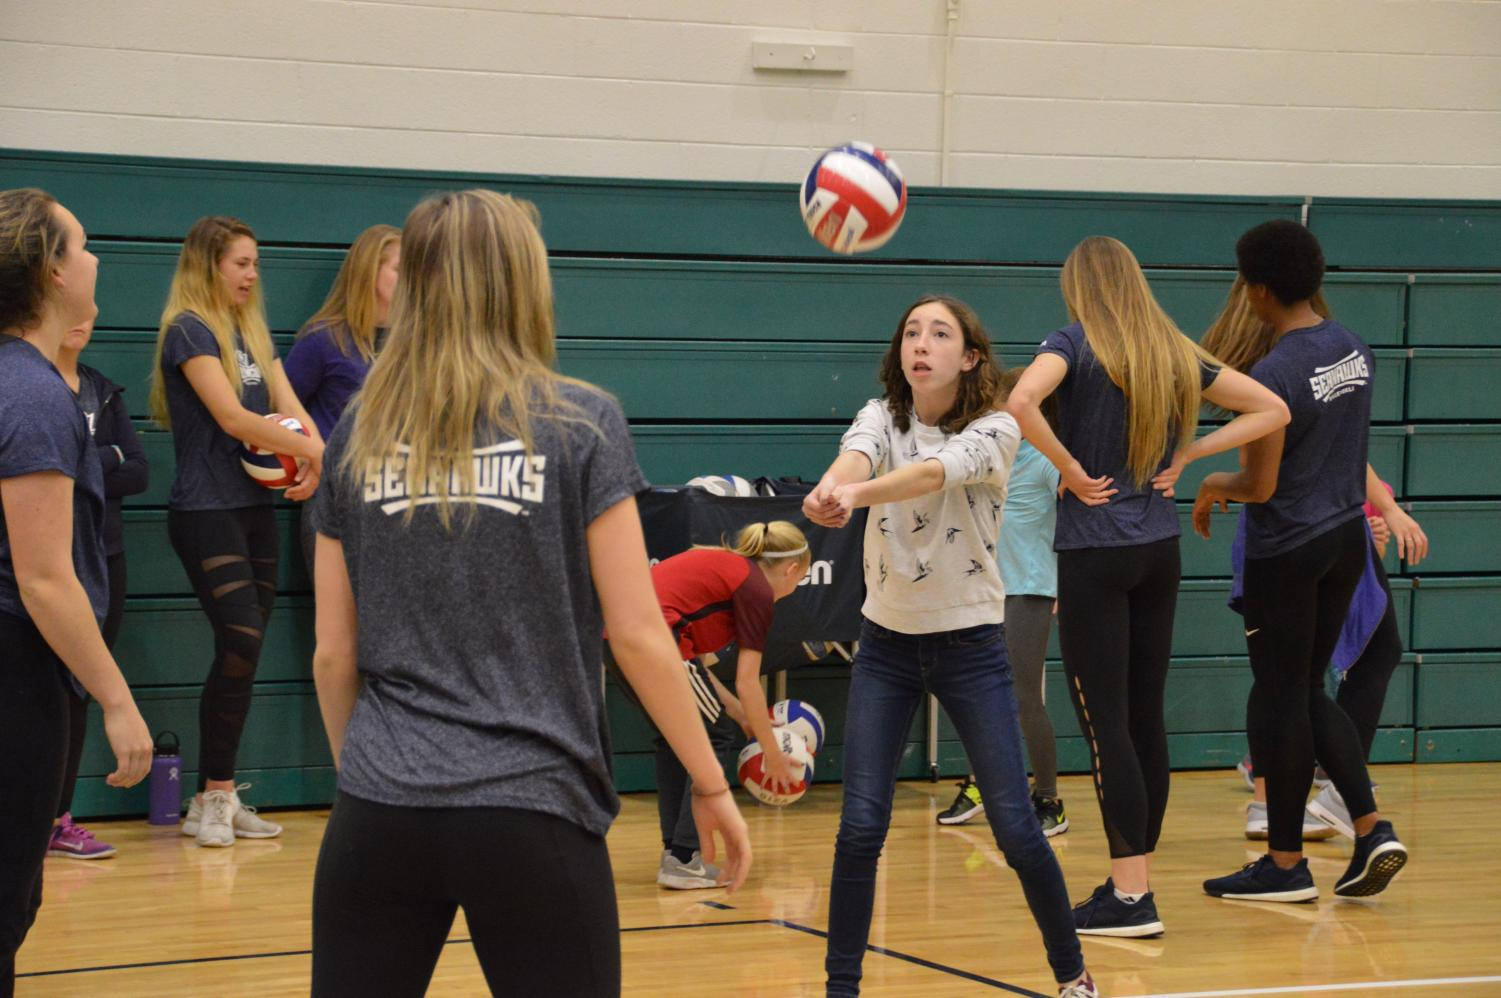 A+young+girl+works+on+volleyball+skills+with+members+of+the+team